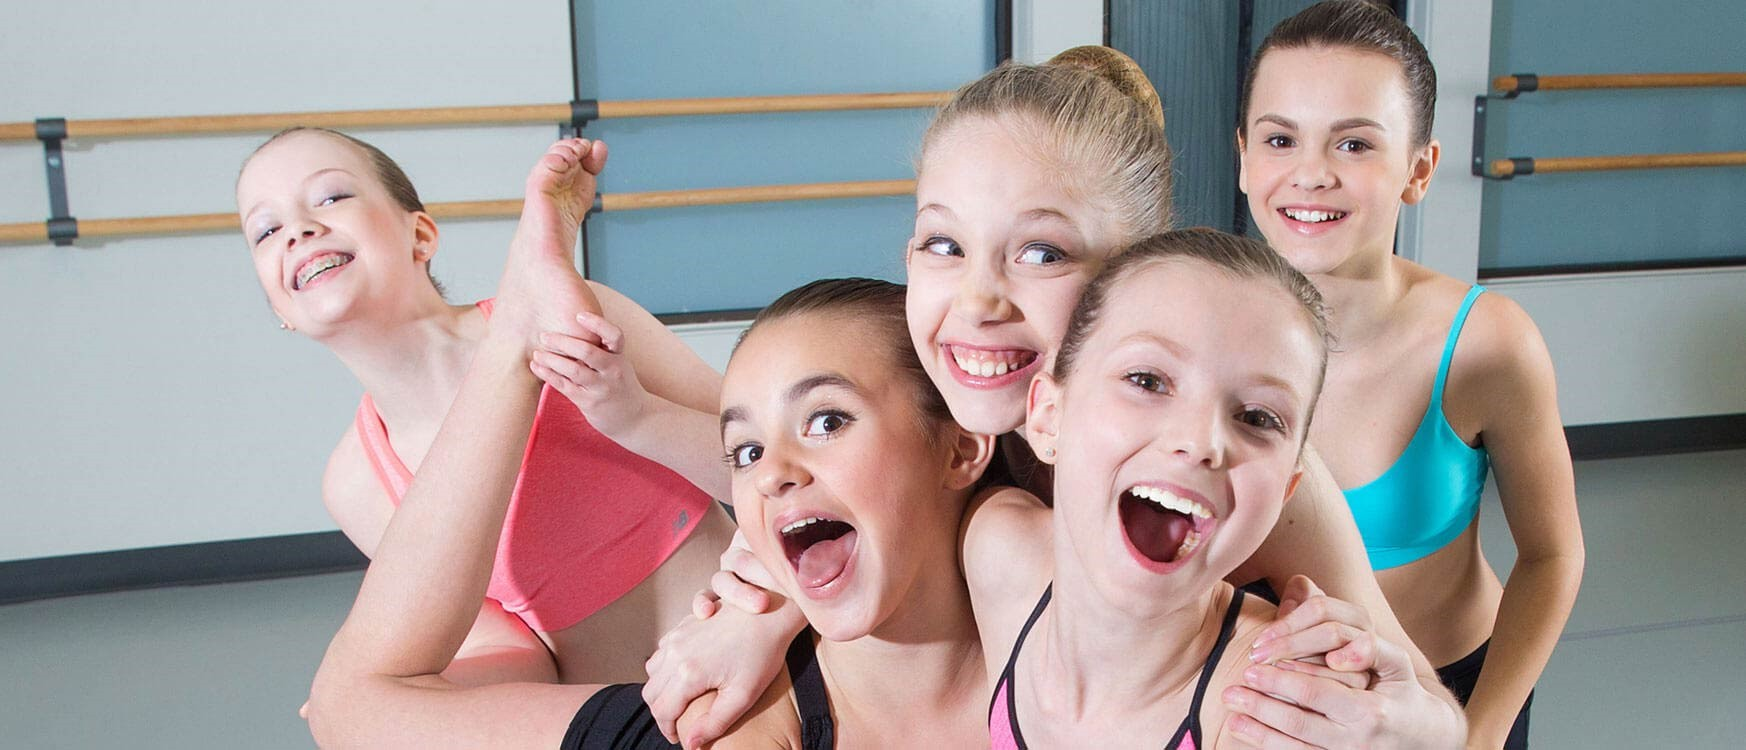 Recreational classes for students seeking fun & exercise